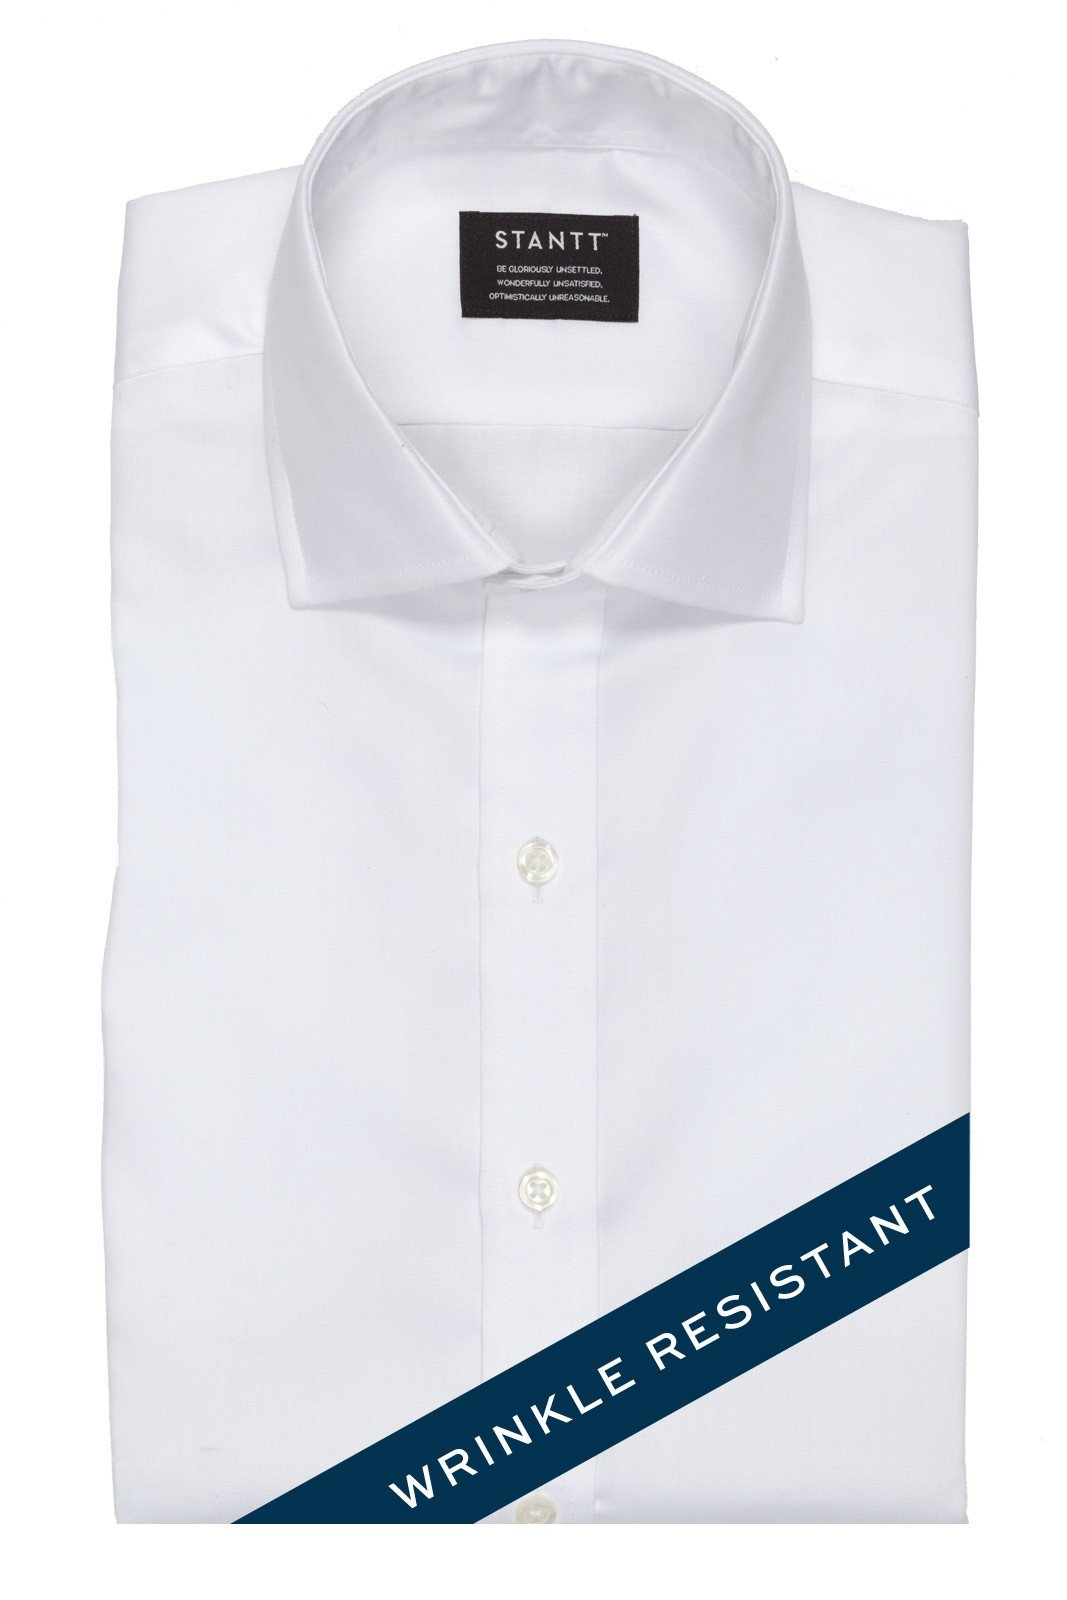 Wrinkle-Resistant White Twill: Modified-Spread Collar, Barrel Cuff